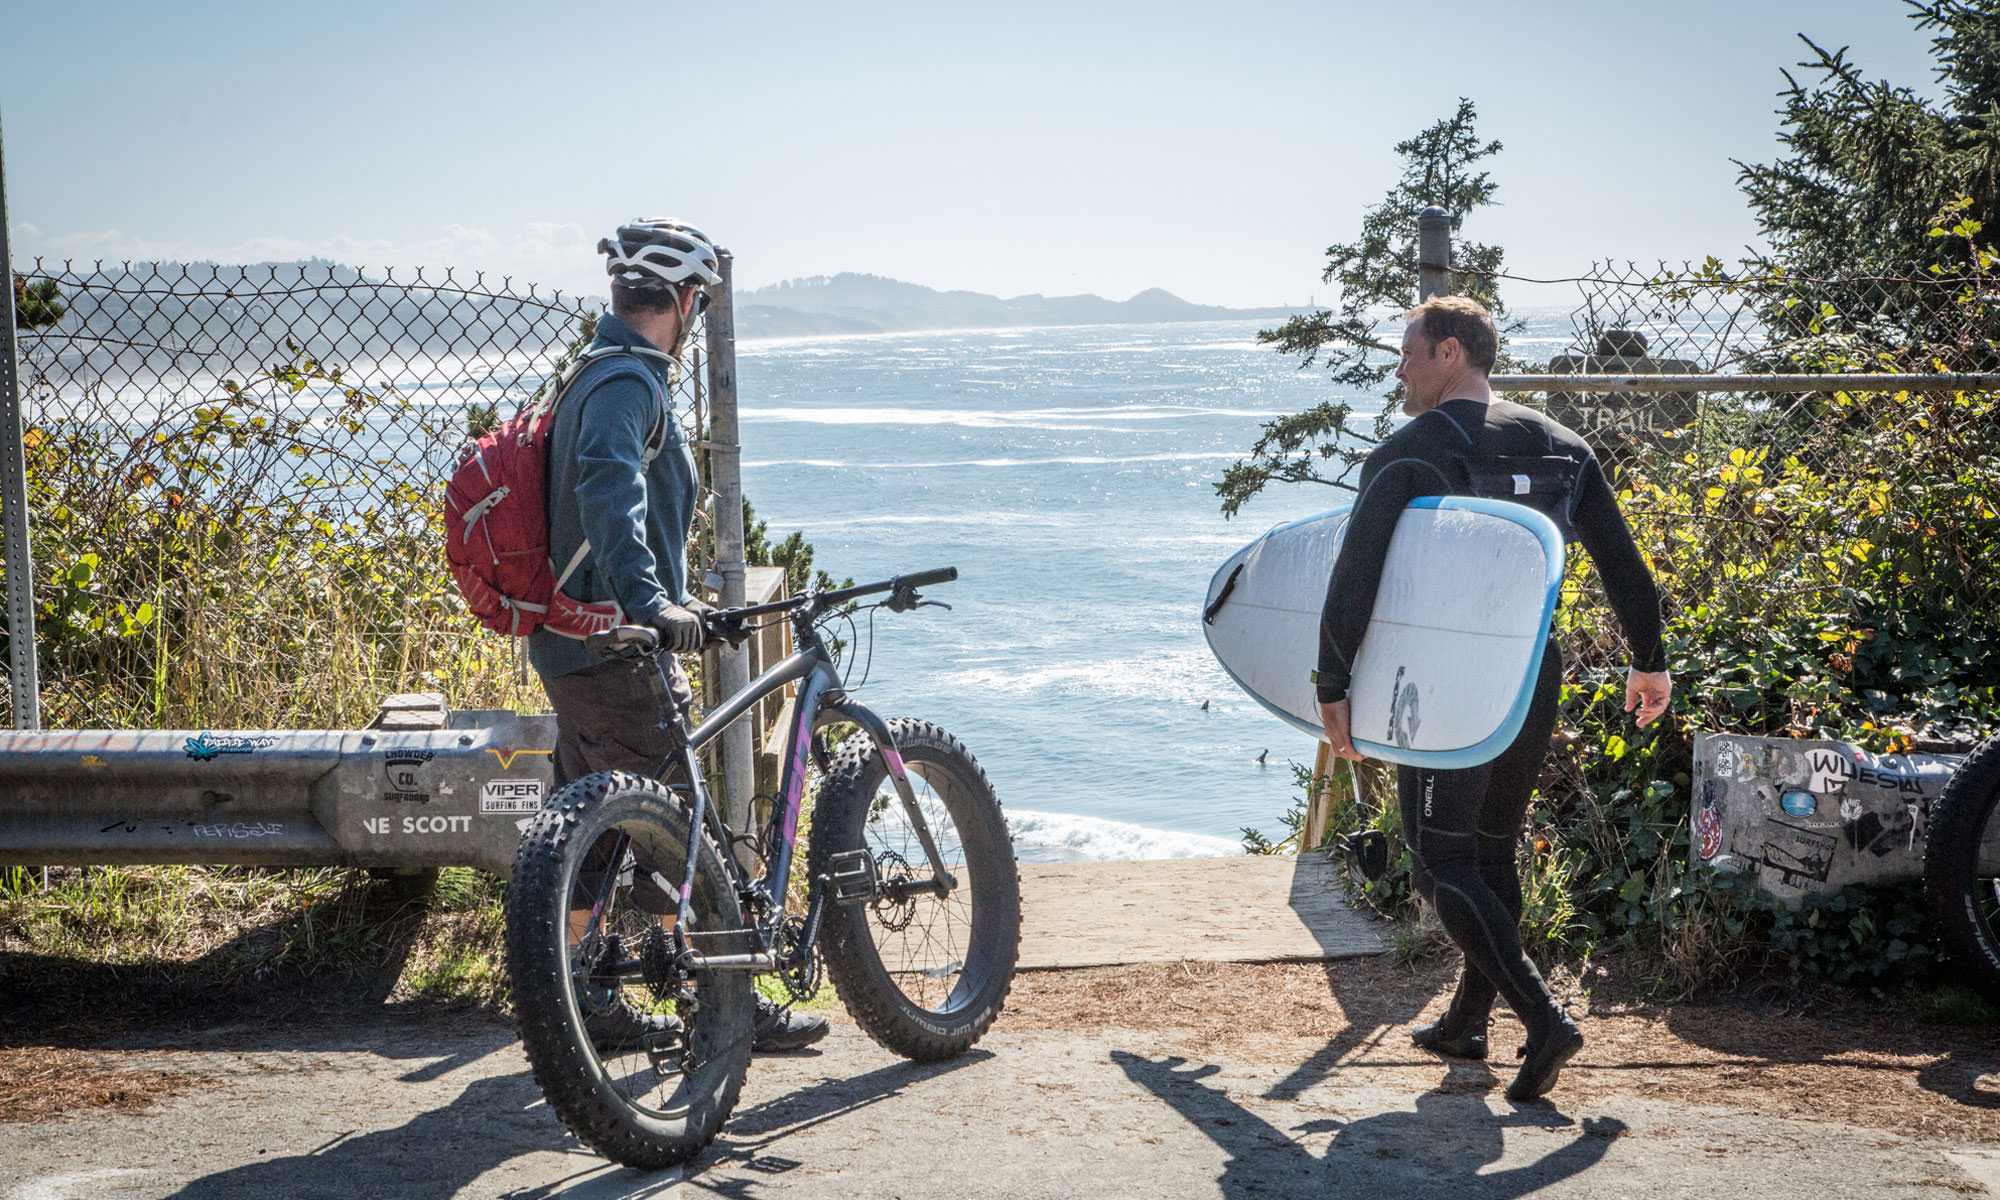 Man holding a fat bike shares the sidewalk with a surfer.